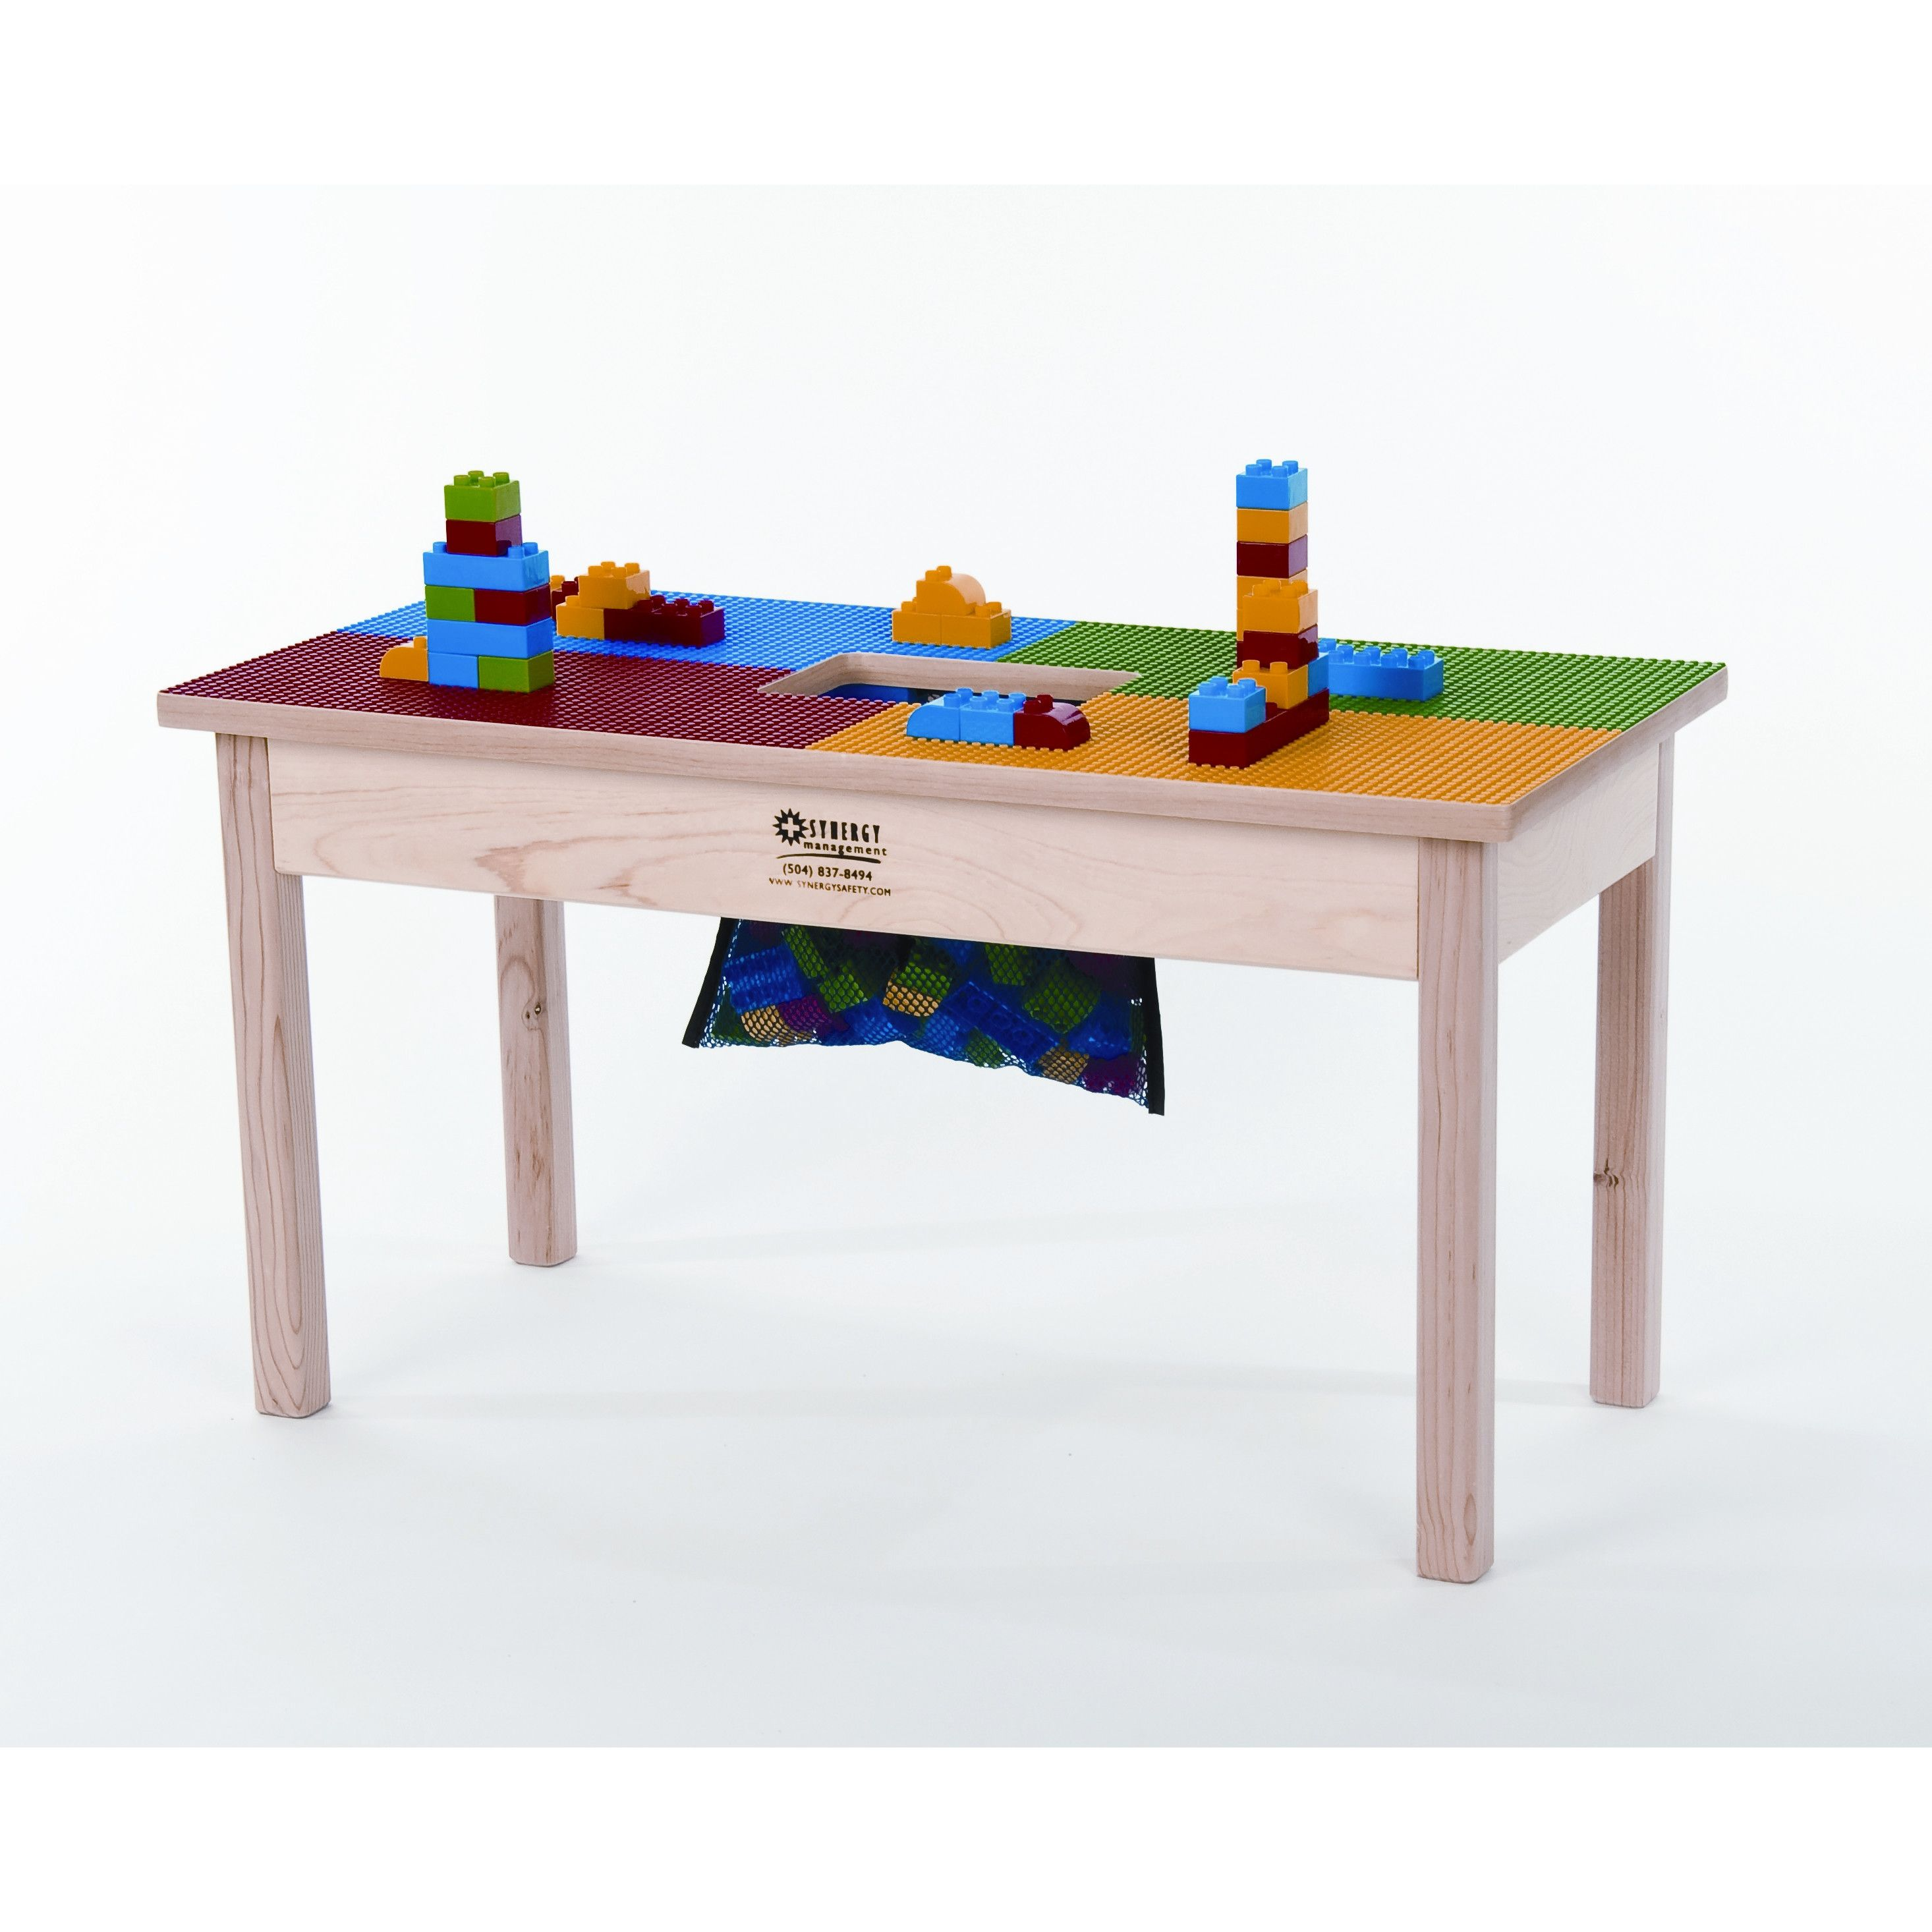 Brilliant Zoomie Kids Cornwell 16 X 32 Fun Builder Table Play Download Free Architecture Designs Sospemadebymaigaardcom